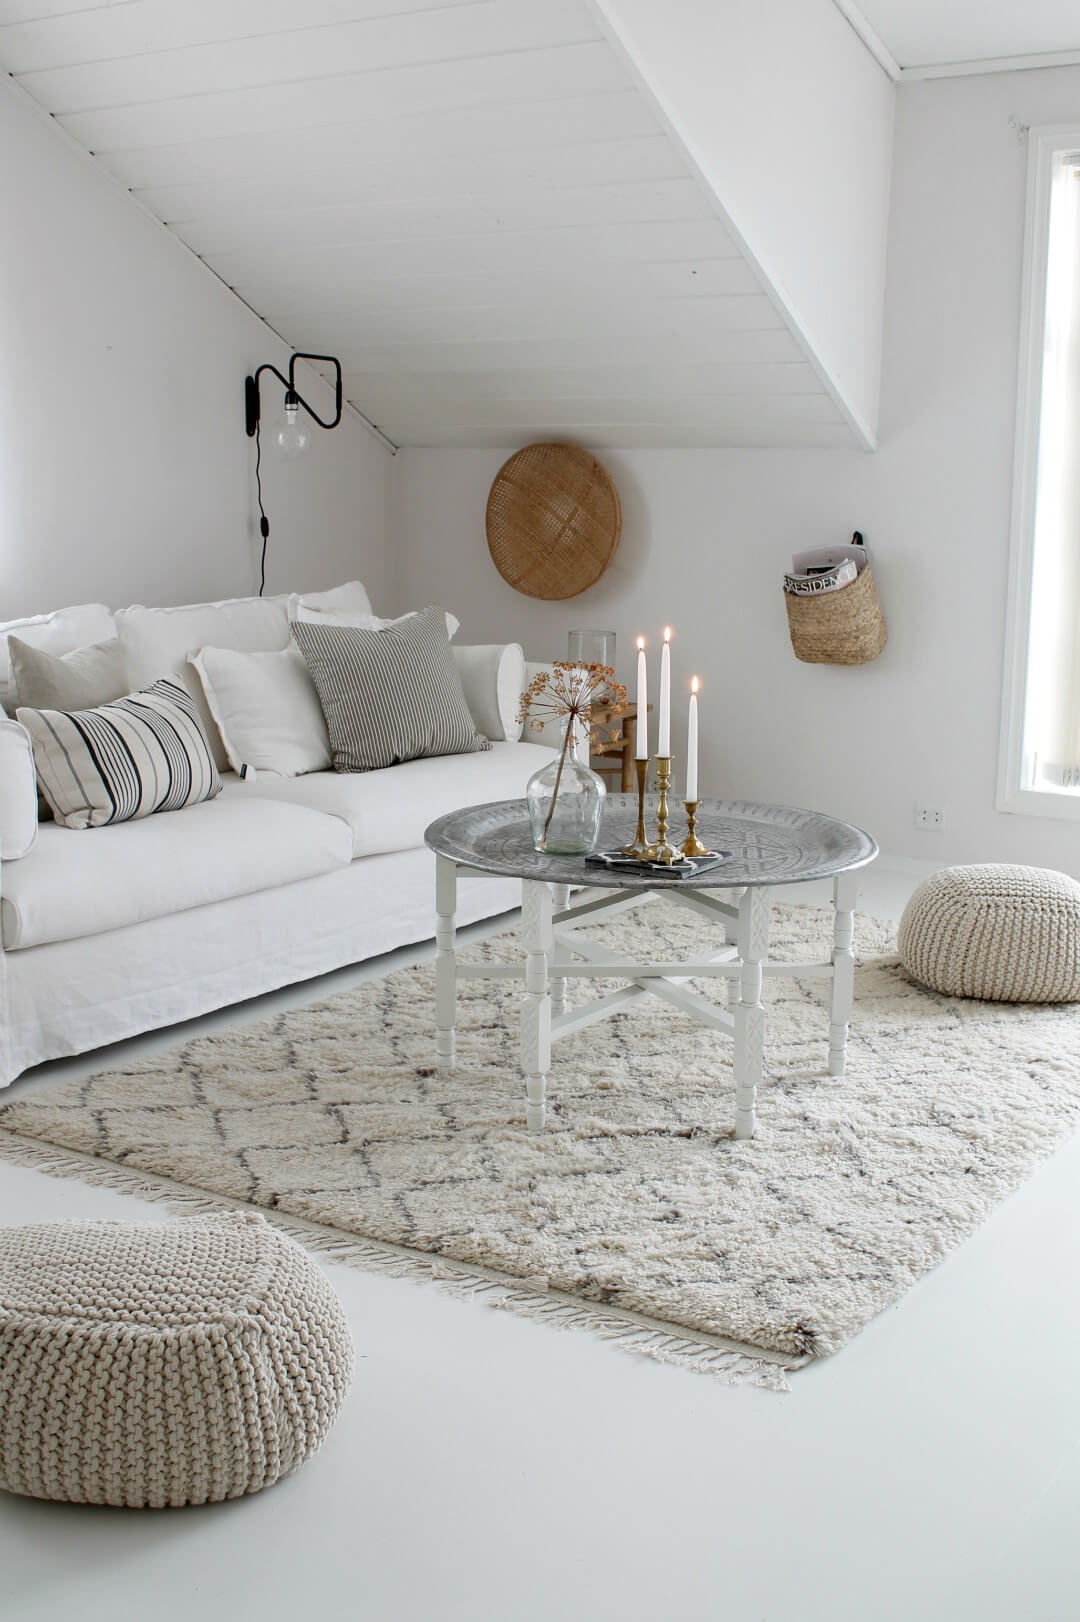 Elegant Room with Basket Accents